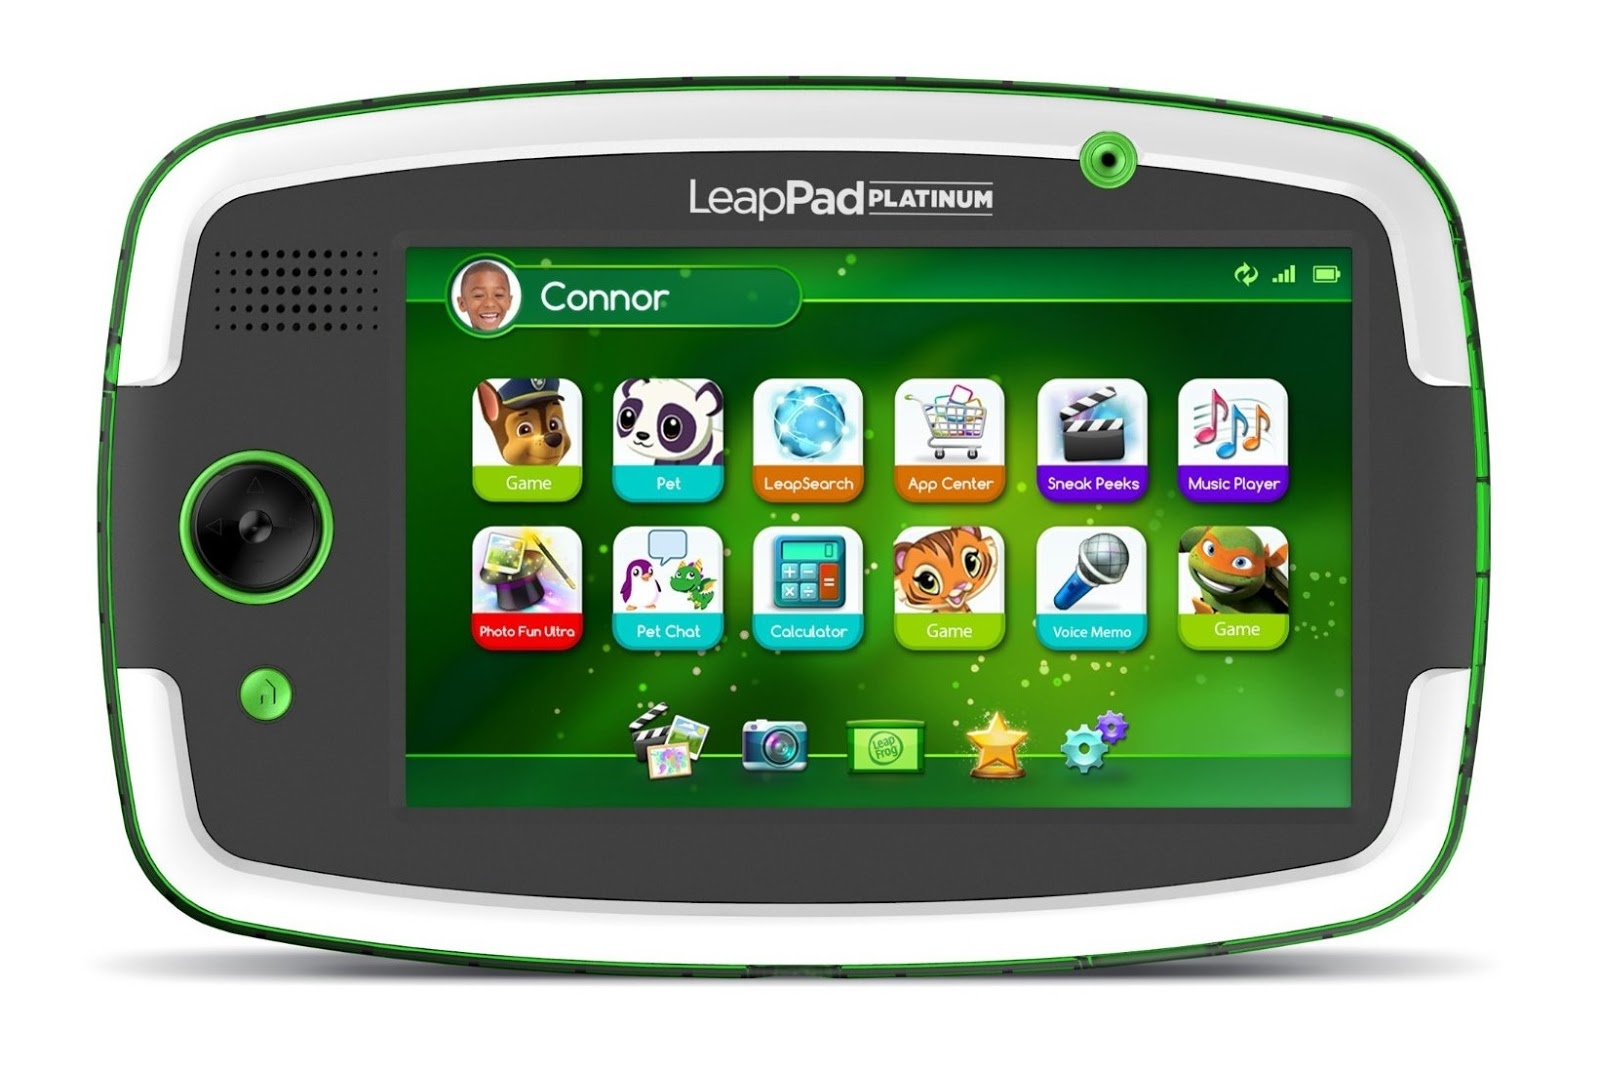 *HOT* Two FREE LeapPad App Codes - Save $15